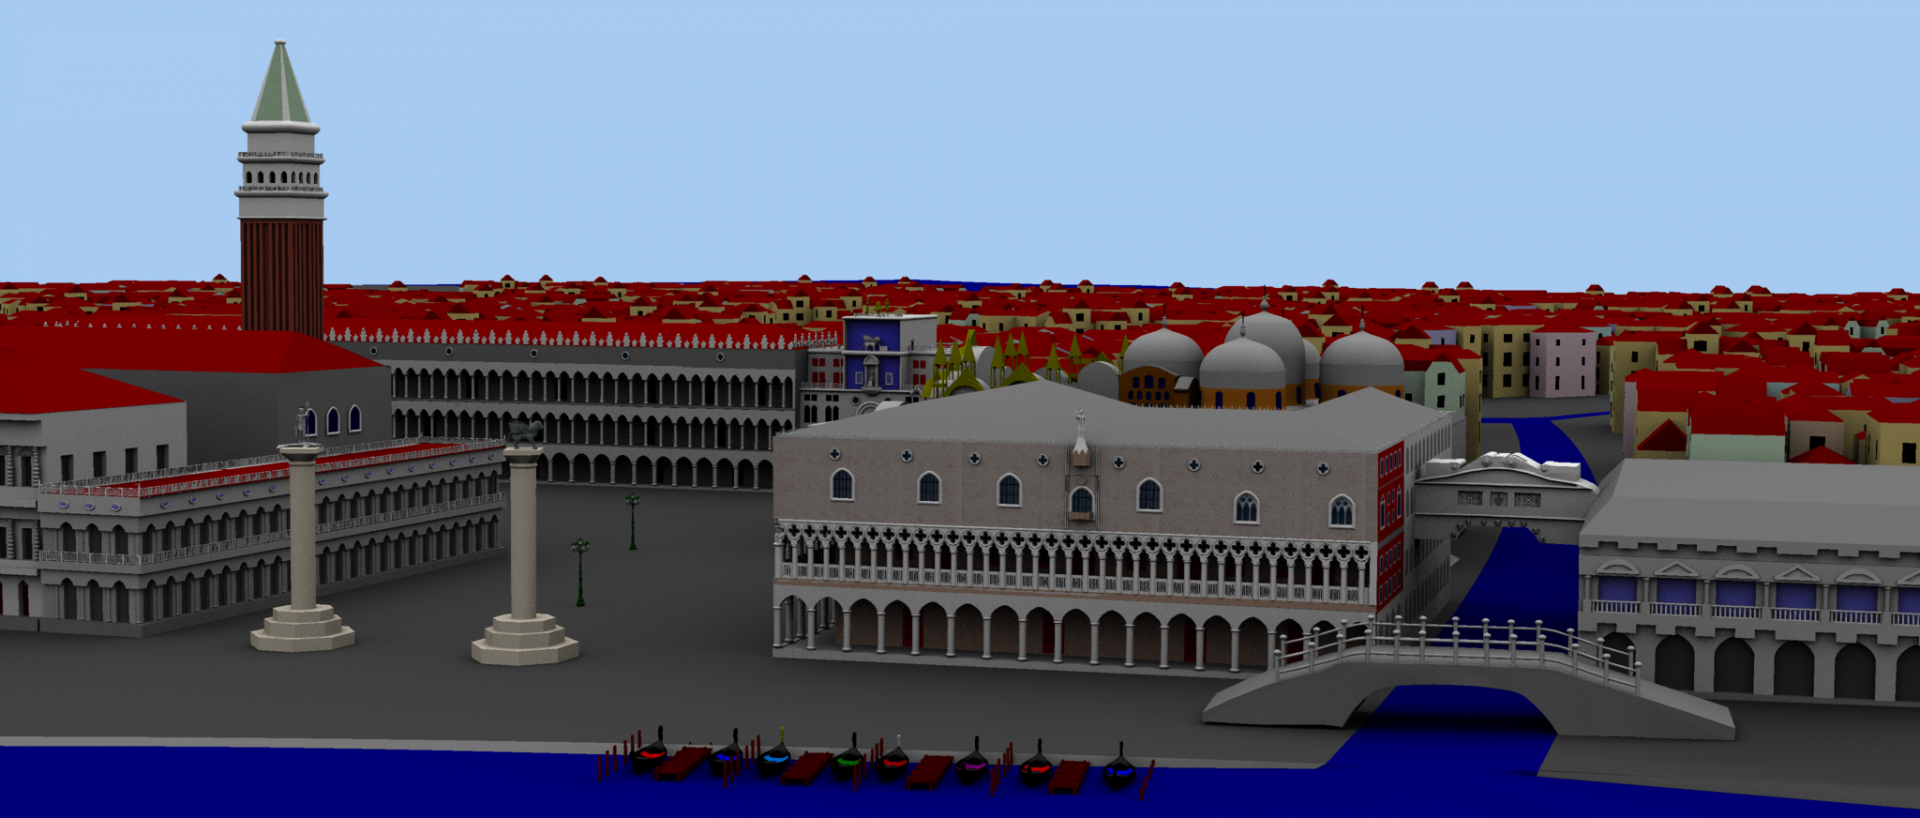 Venice in progress AOc0.png